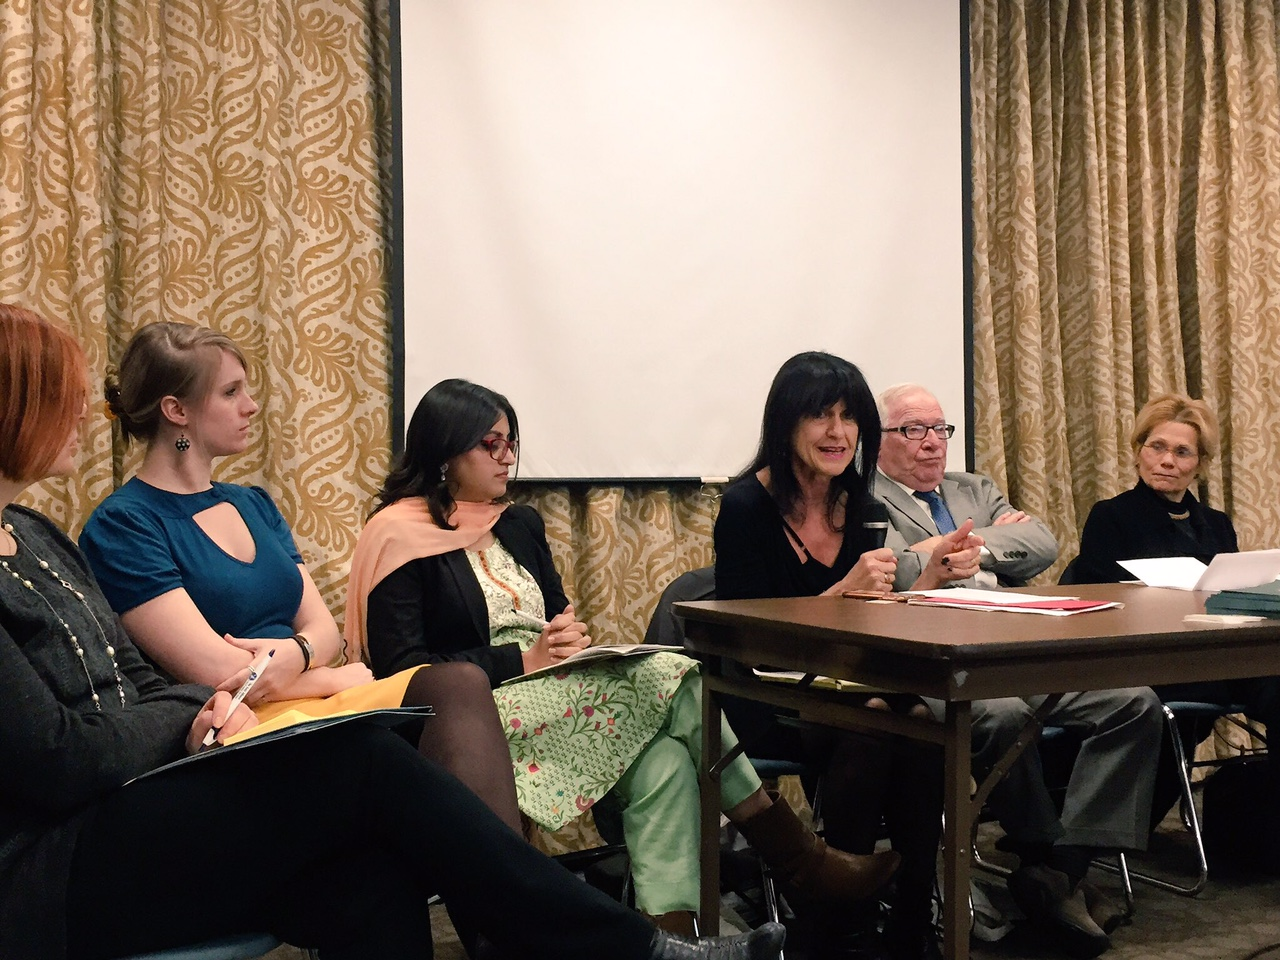 Sari Gold, Christen Brandt, Gulalai Ismail listening to Susan Blaustein, with Irving Fish and Louise Guido.